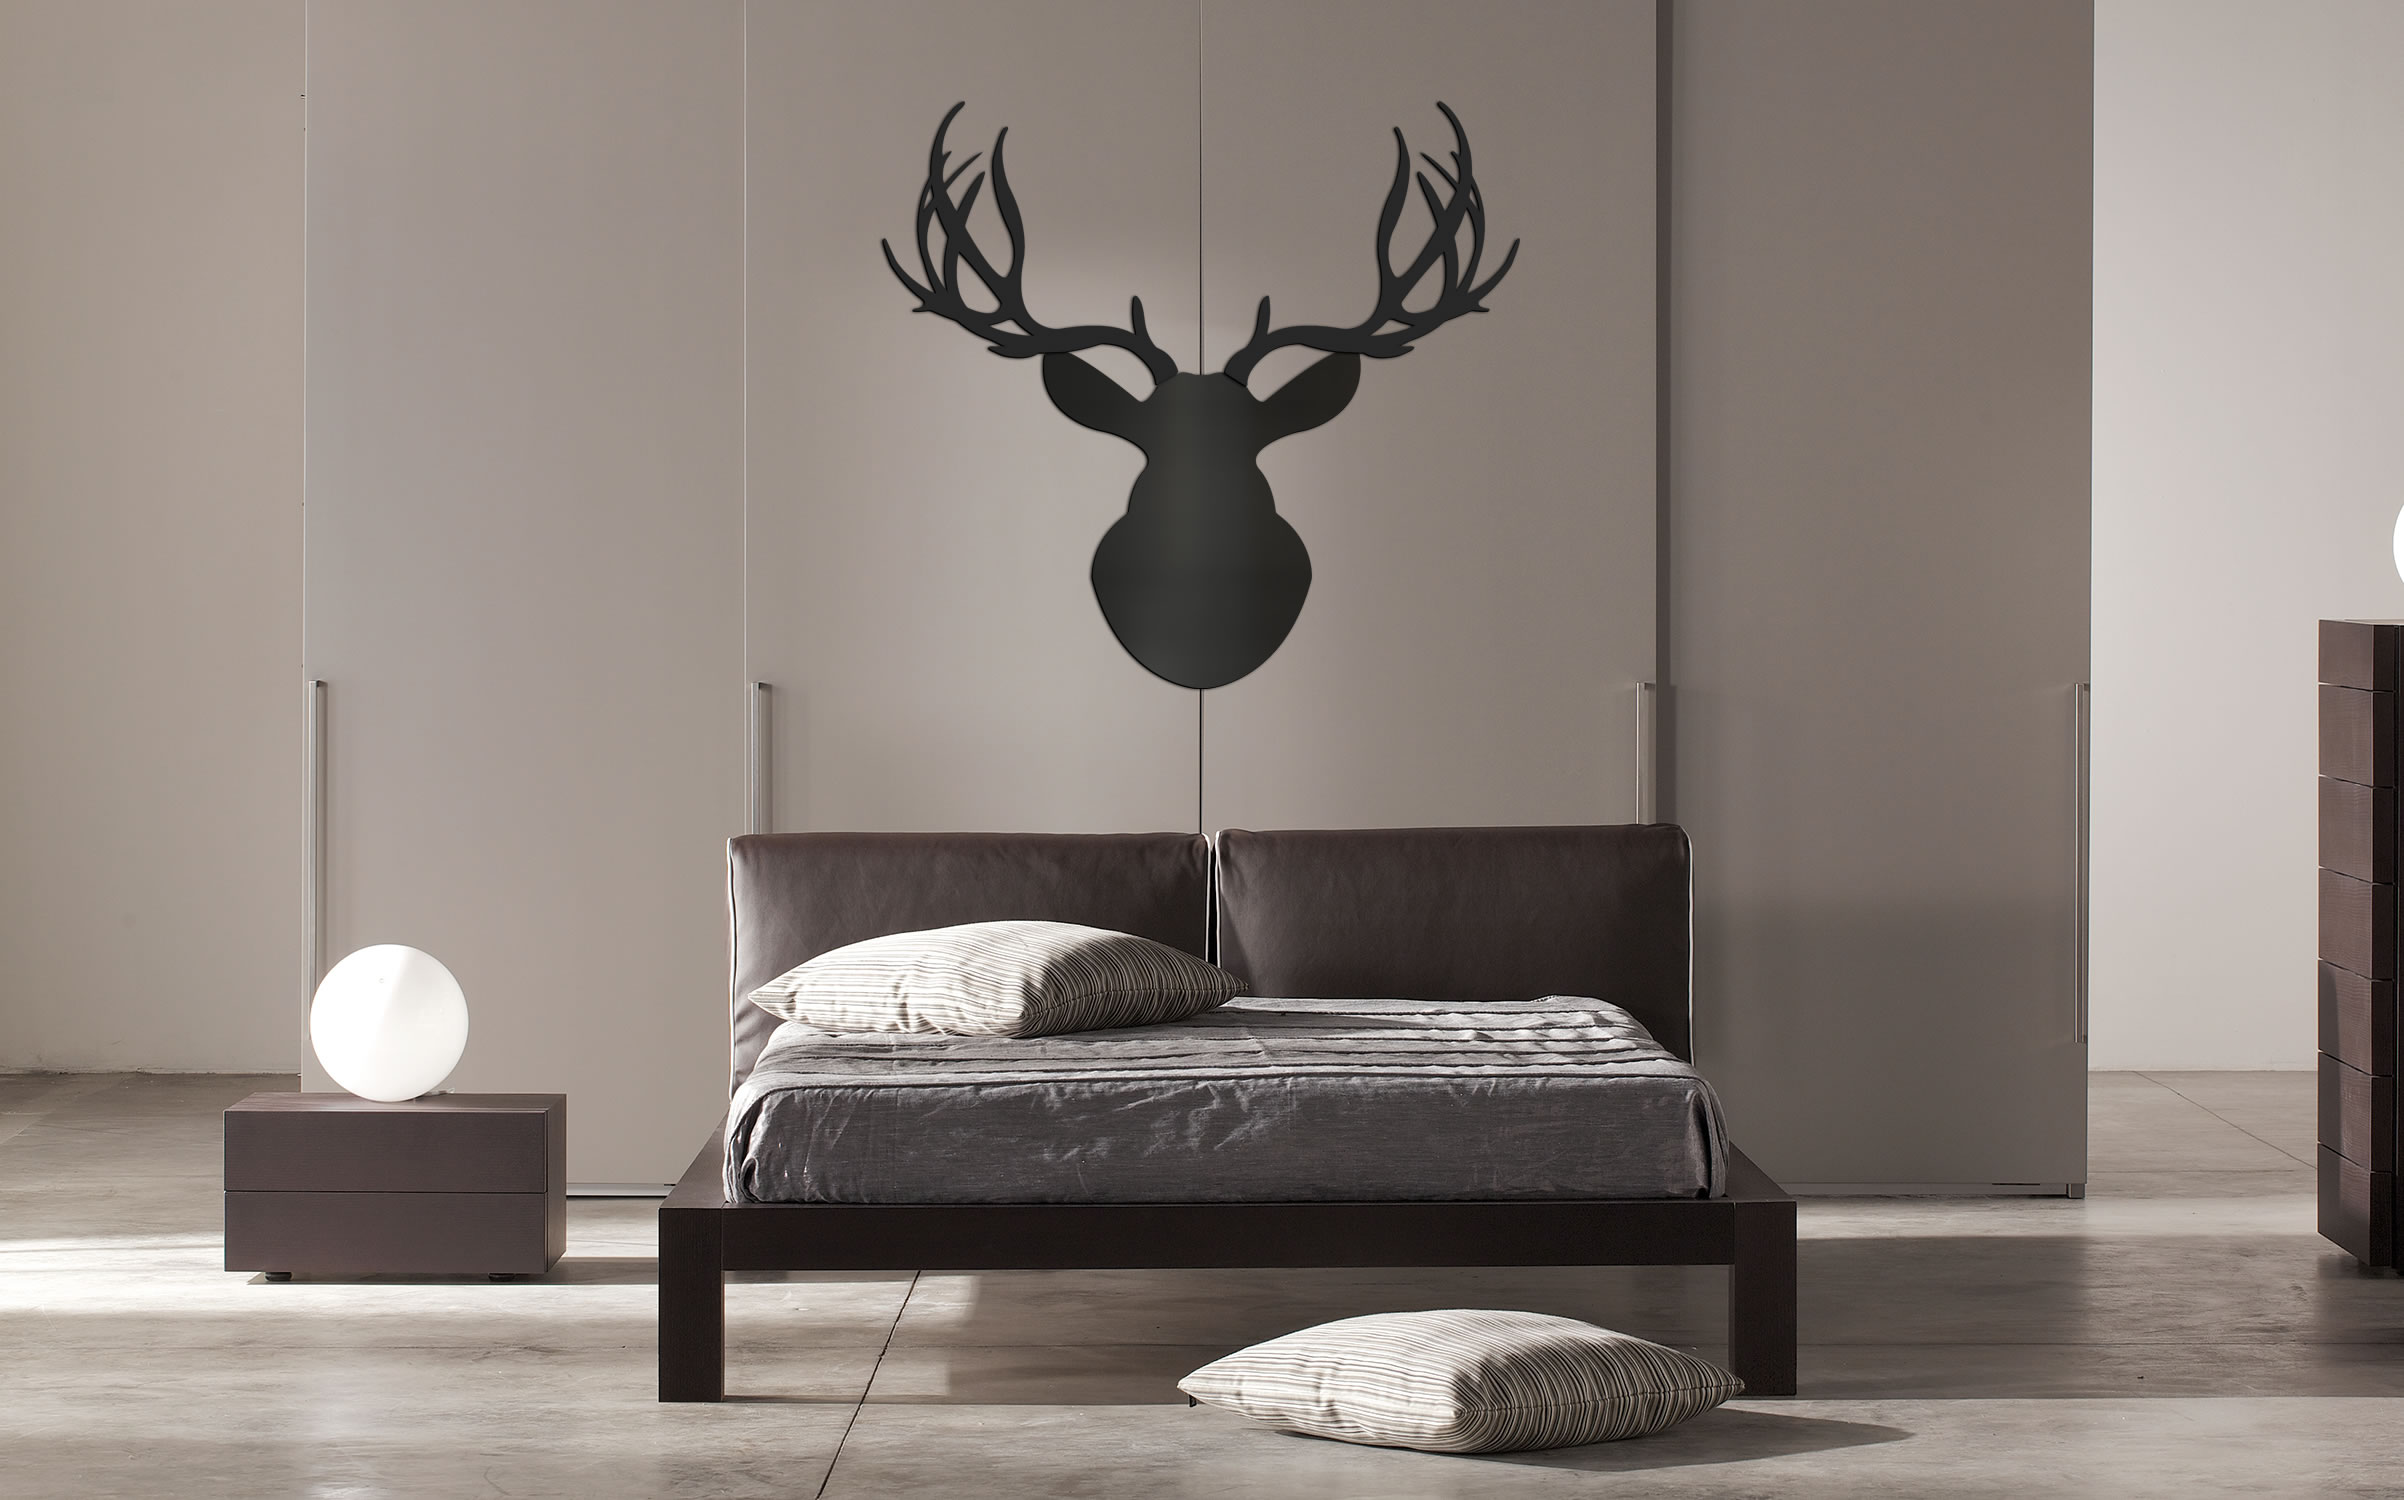 MIDNIGHT BUCK - 36x36 in. Pure Black Deer Cut-Out - Lifestyle Image